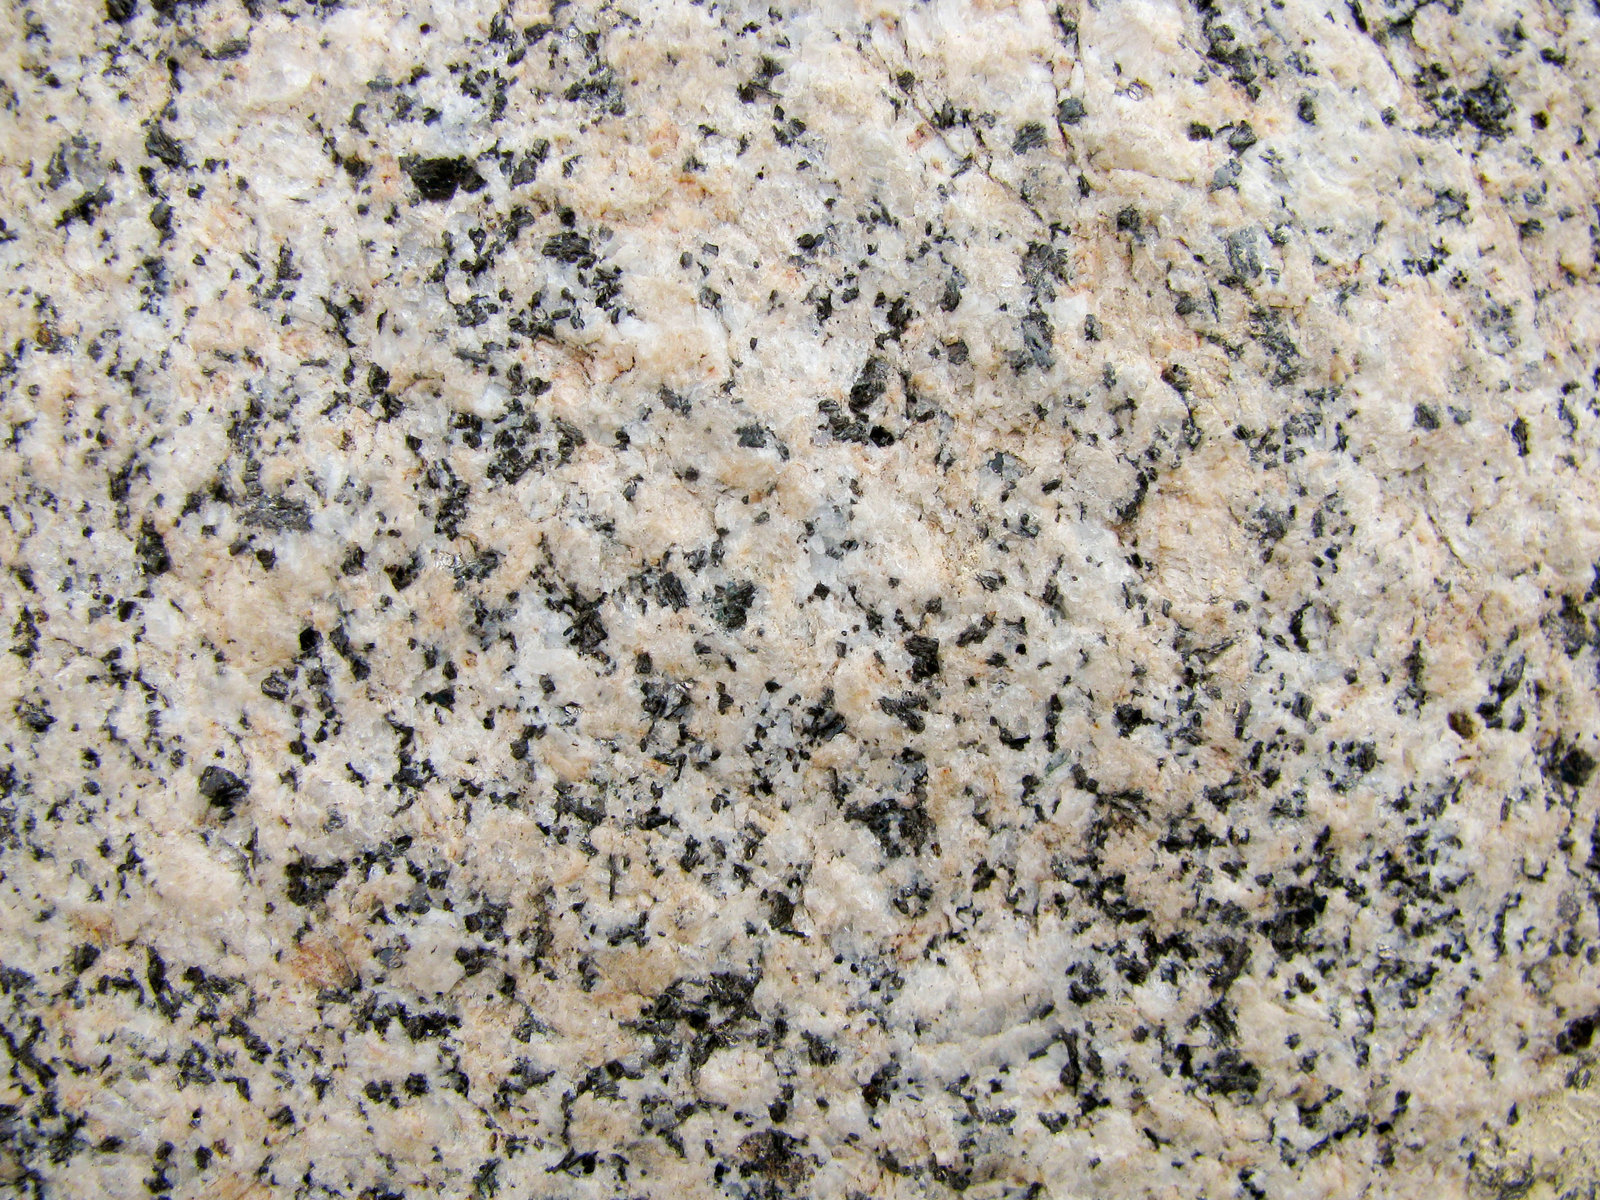 Granite Background Texture : Granite stone texture download photo background